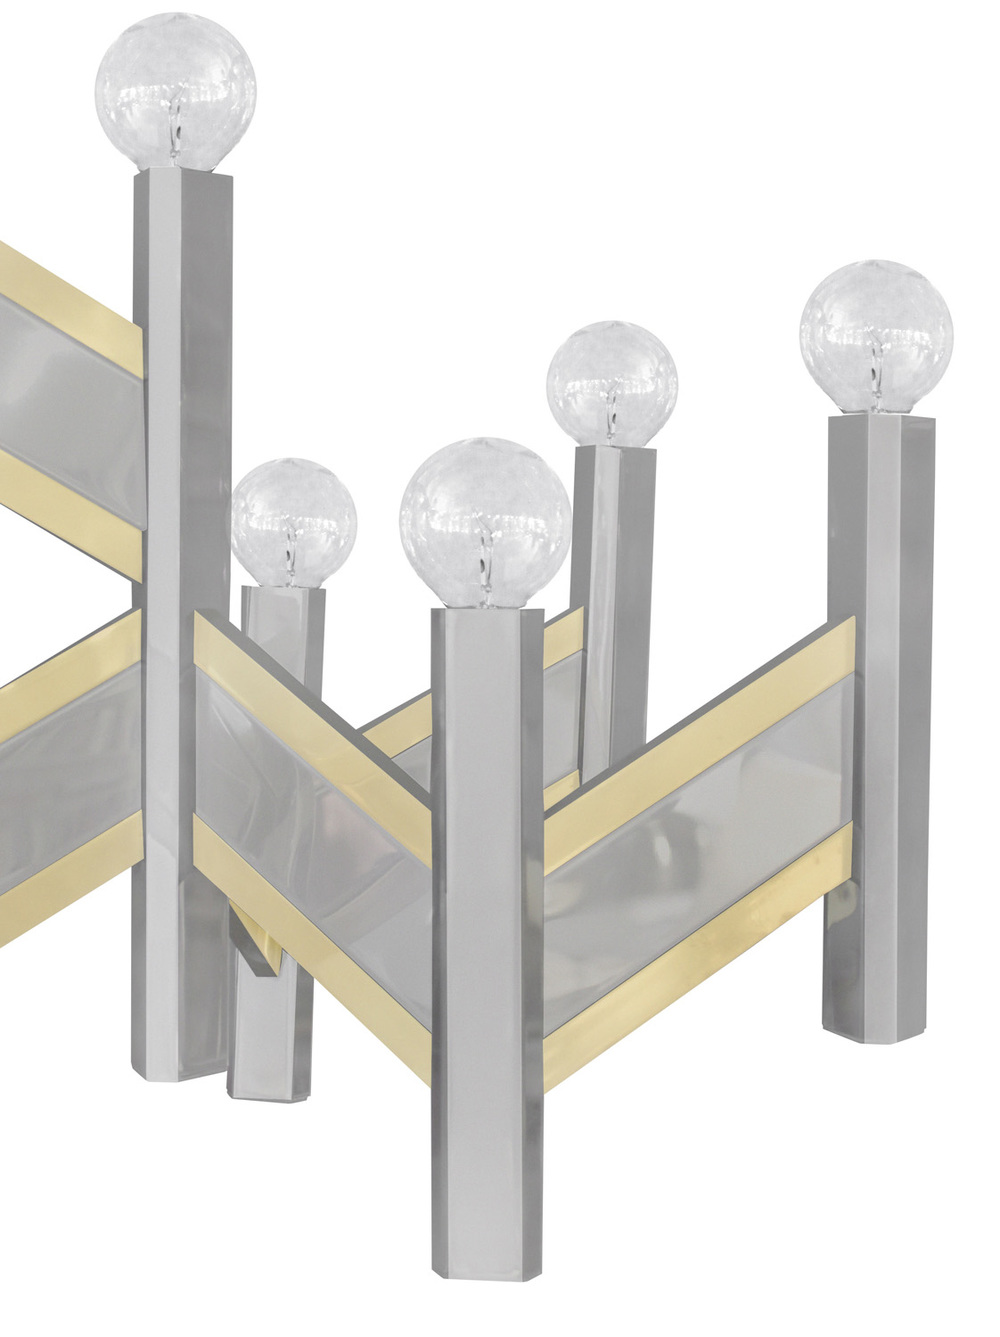 Sciolari 55 chrome+brass angular chandelier215 detail2 hires.jpg